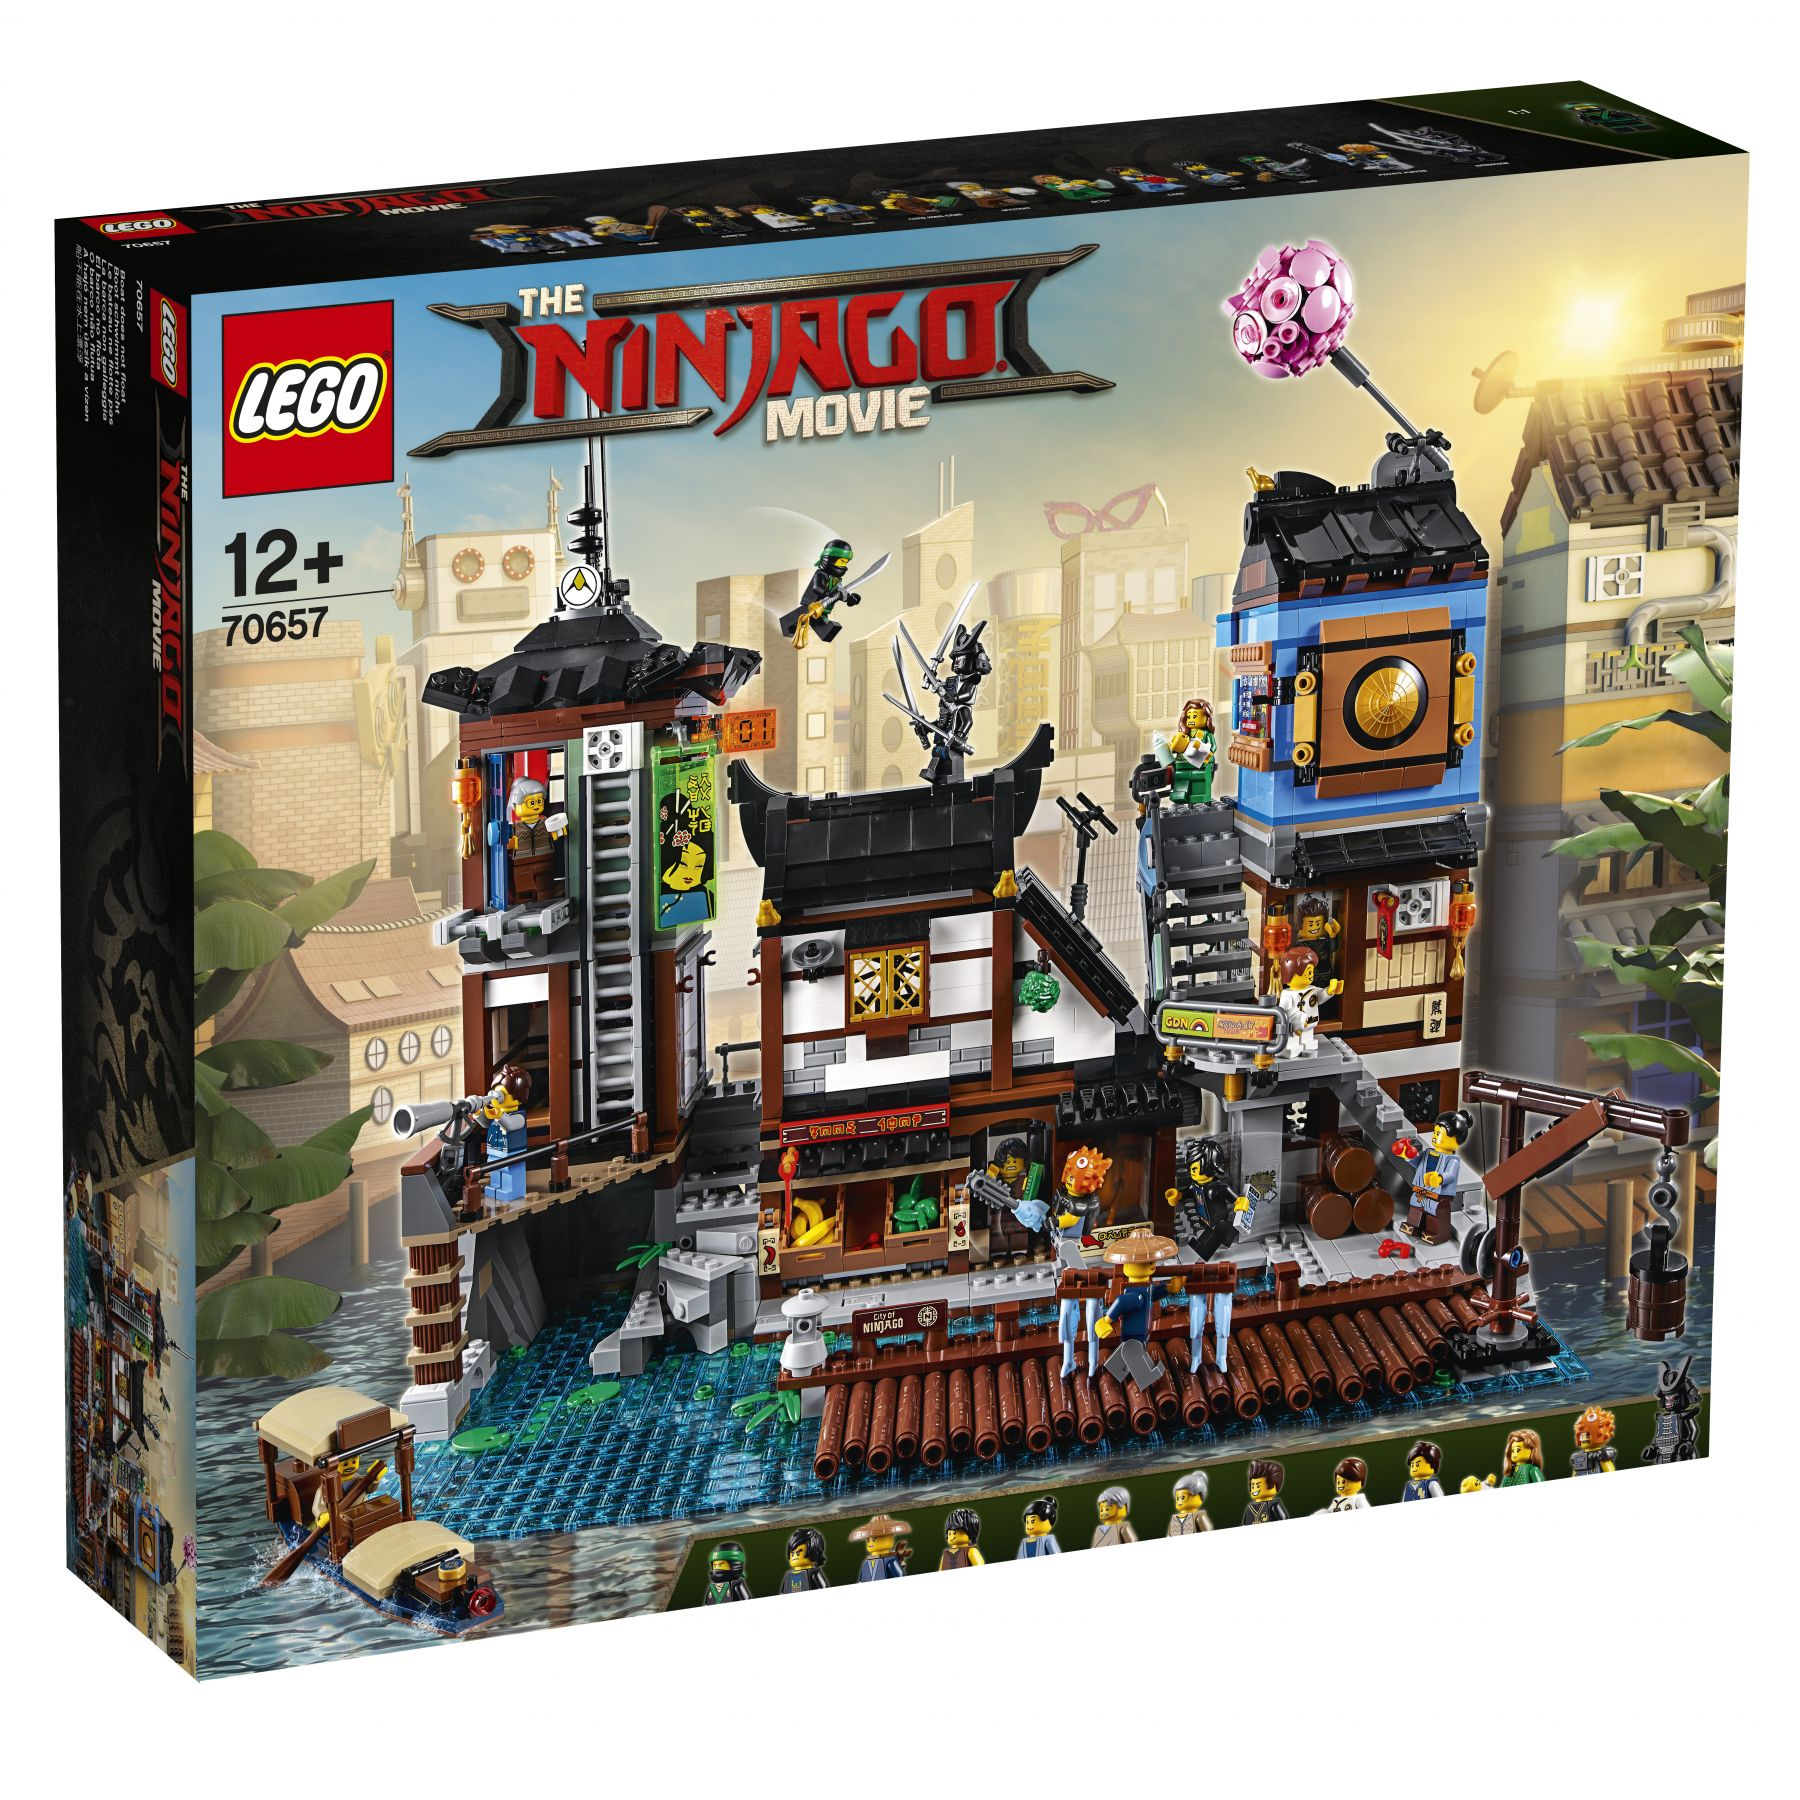 LEGO The LEGO Ninjago Movie 70657 Ninjago City Hafen LEGO_70657_NINJAGO_City_Docks.jpg